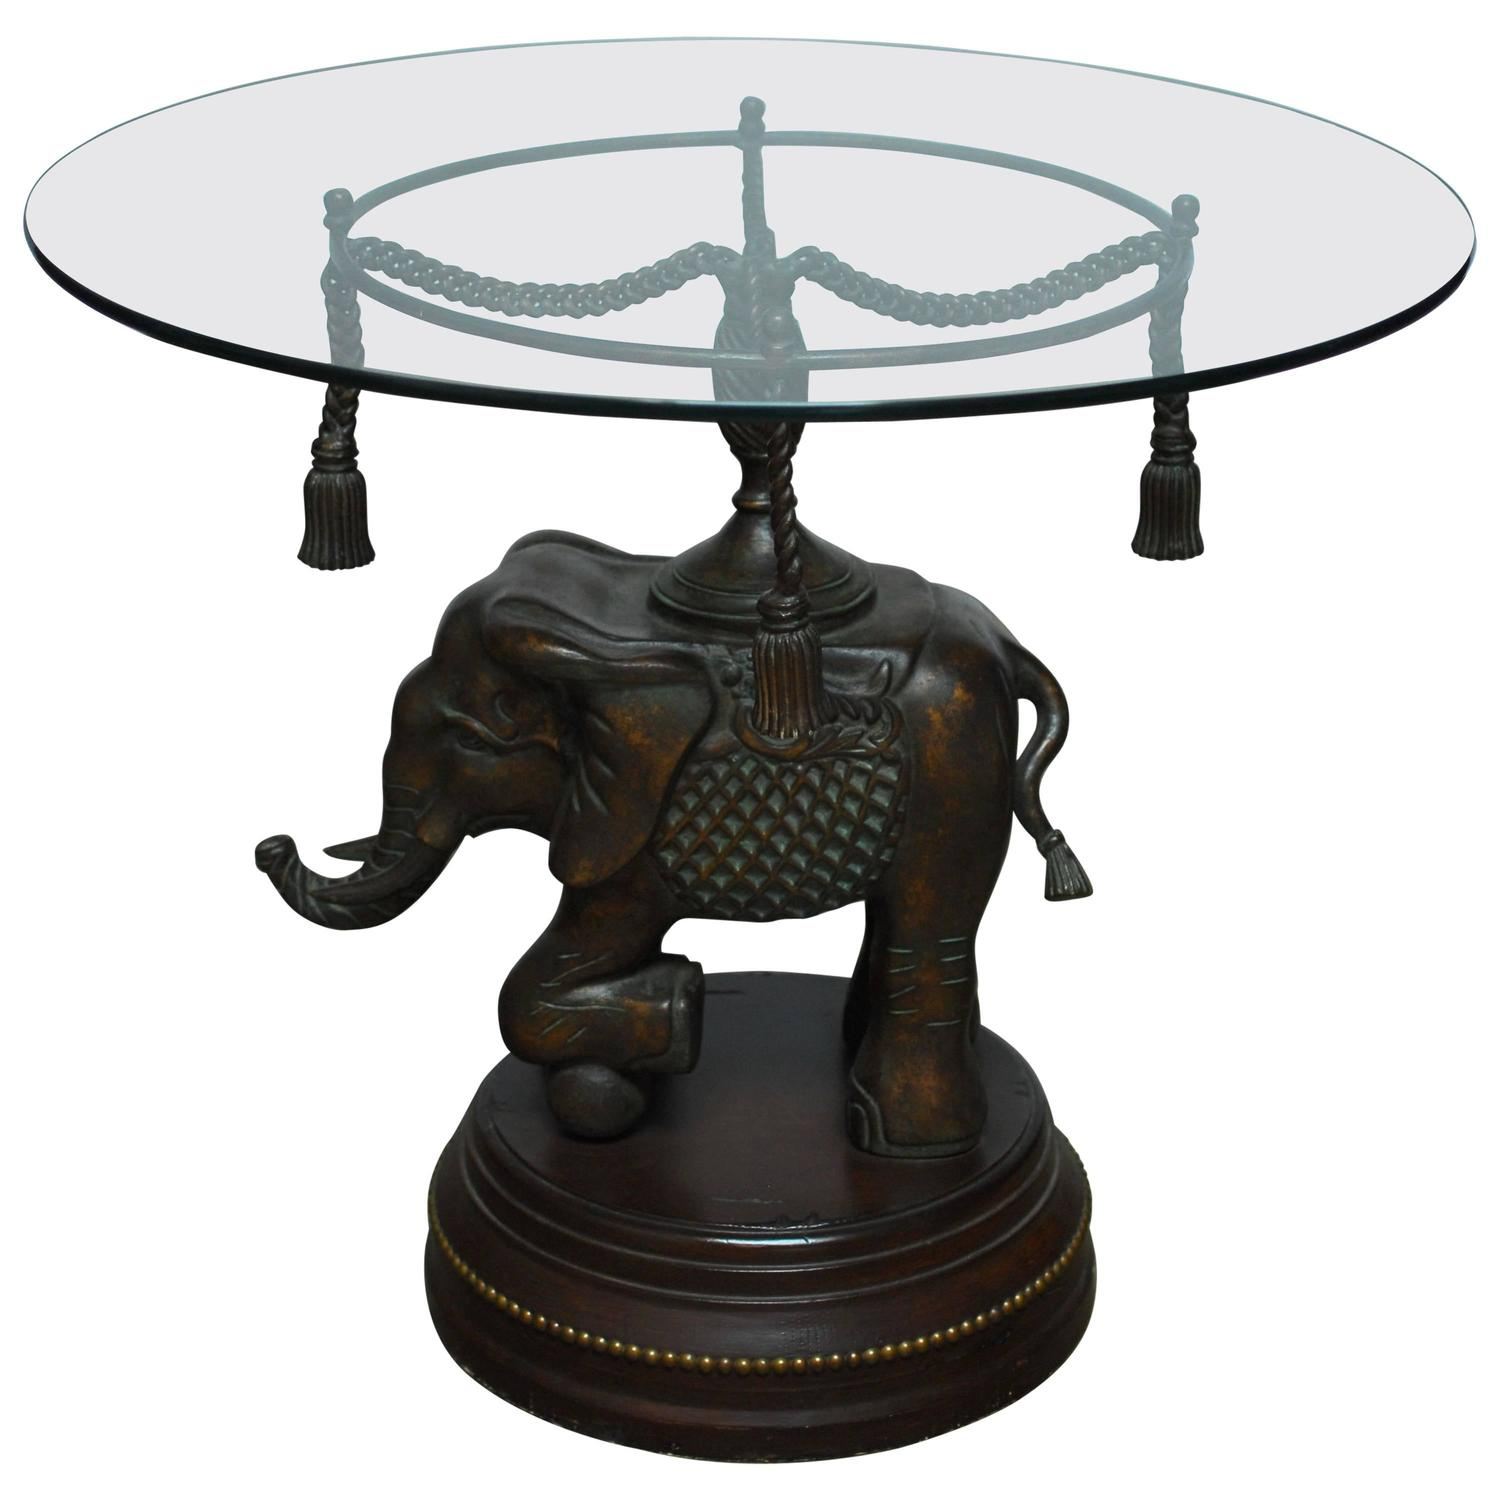 Merveilleux Bronze Elephant Pedestal Side Table For Sale At 1stdibs